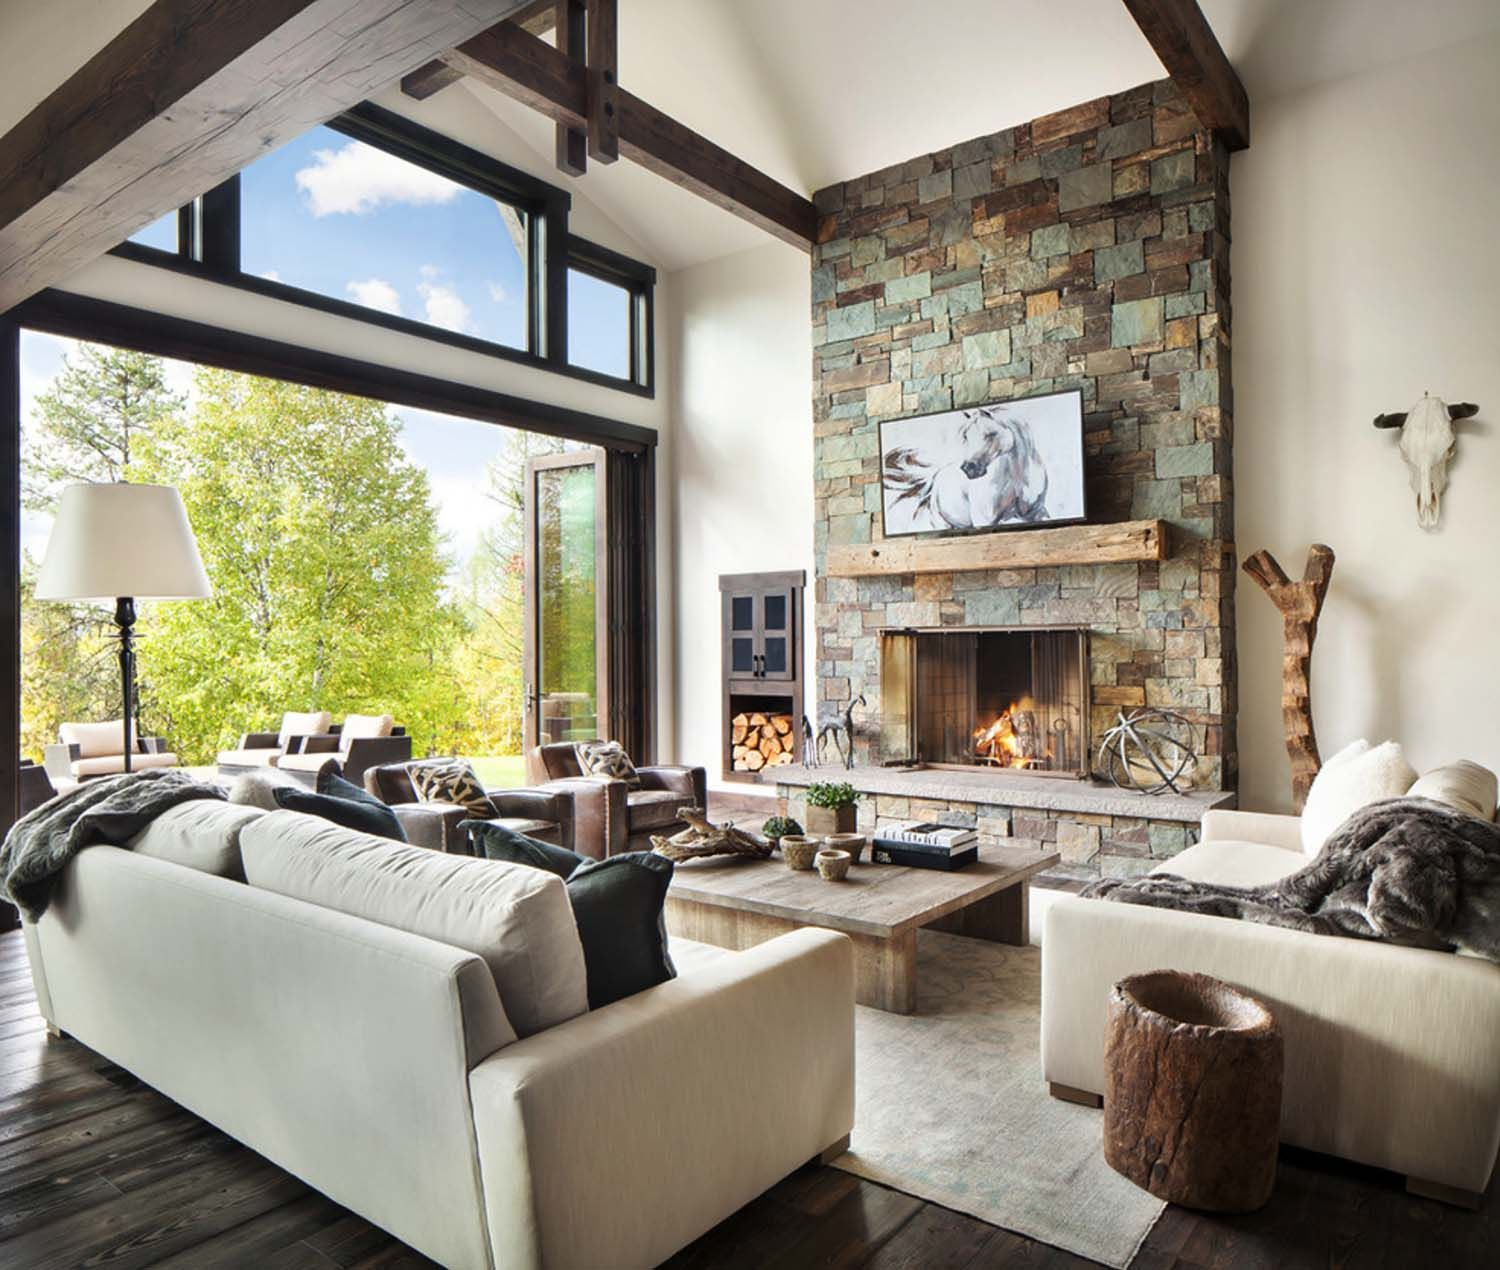 Interior Design Home Decorating Ideas: Rustic-modern Dwelling Nestled In The Northern Rocky